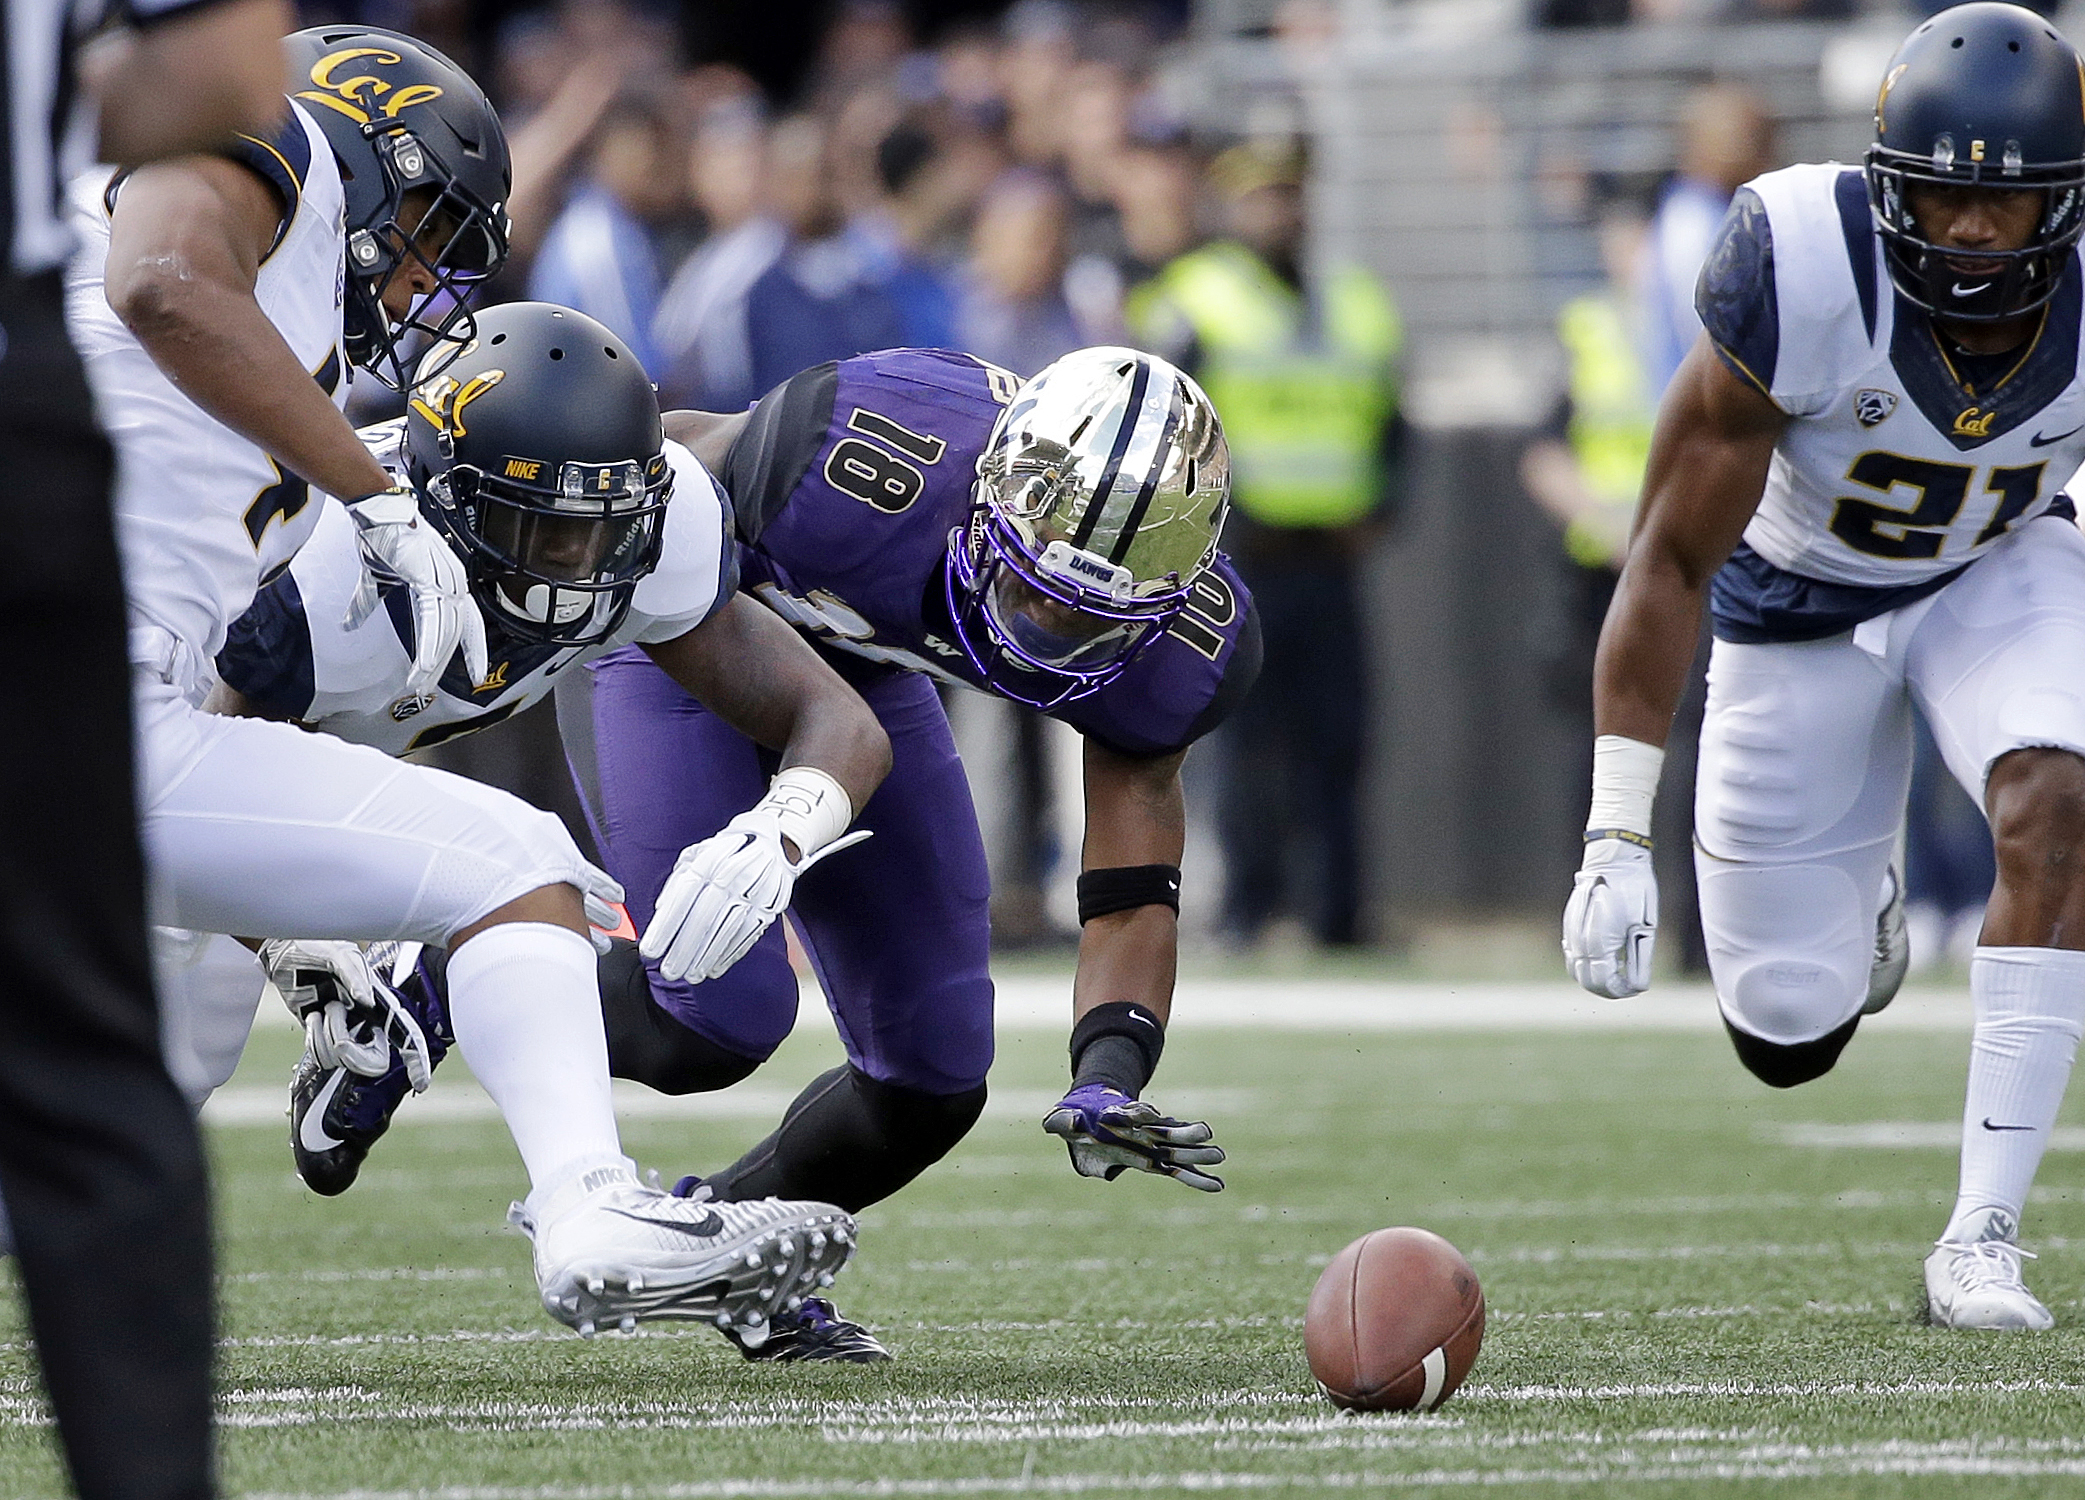 Washington wide receiver Isaiah Renfro (18) watches his fumble as California defenders Hardy Nickerson, left, Darius Allensworth and Stefan McClure (21) surround the ball during the first half an NCAA college football game Saturday, Sept. 26, 2015, in Sea